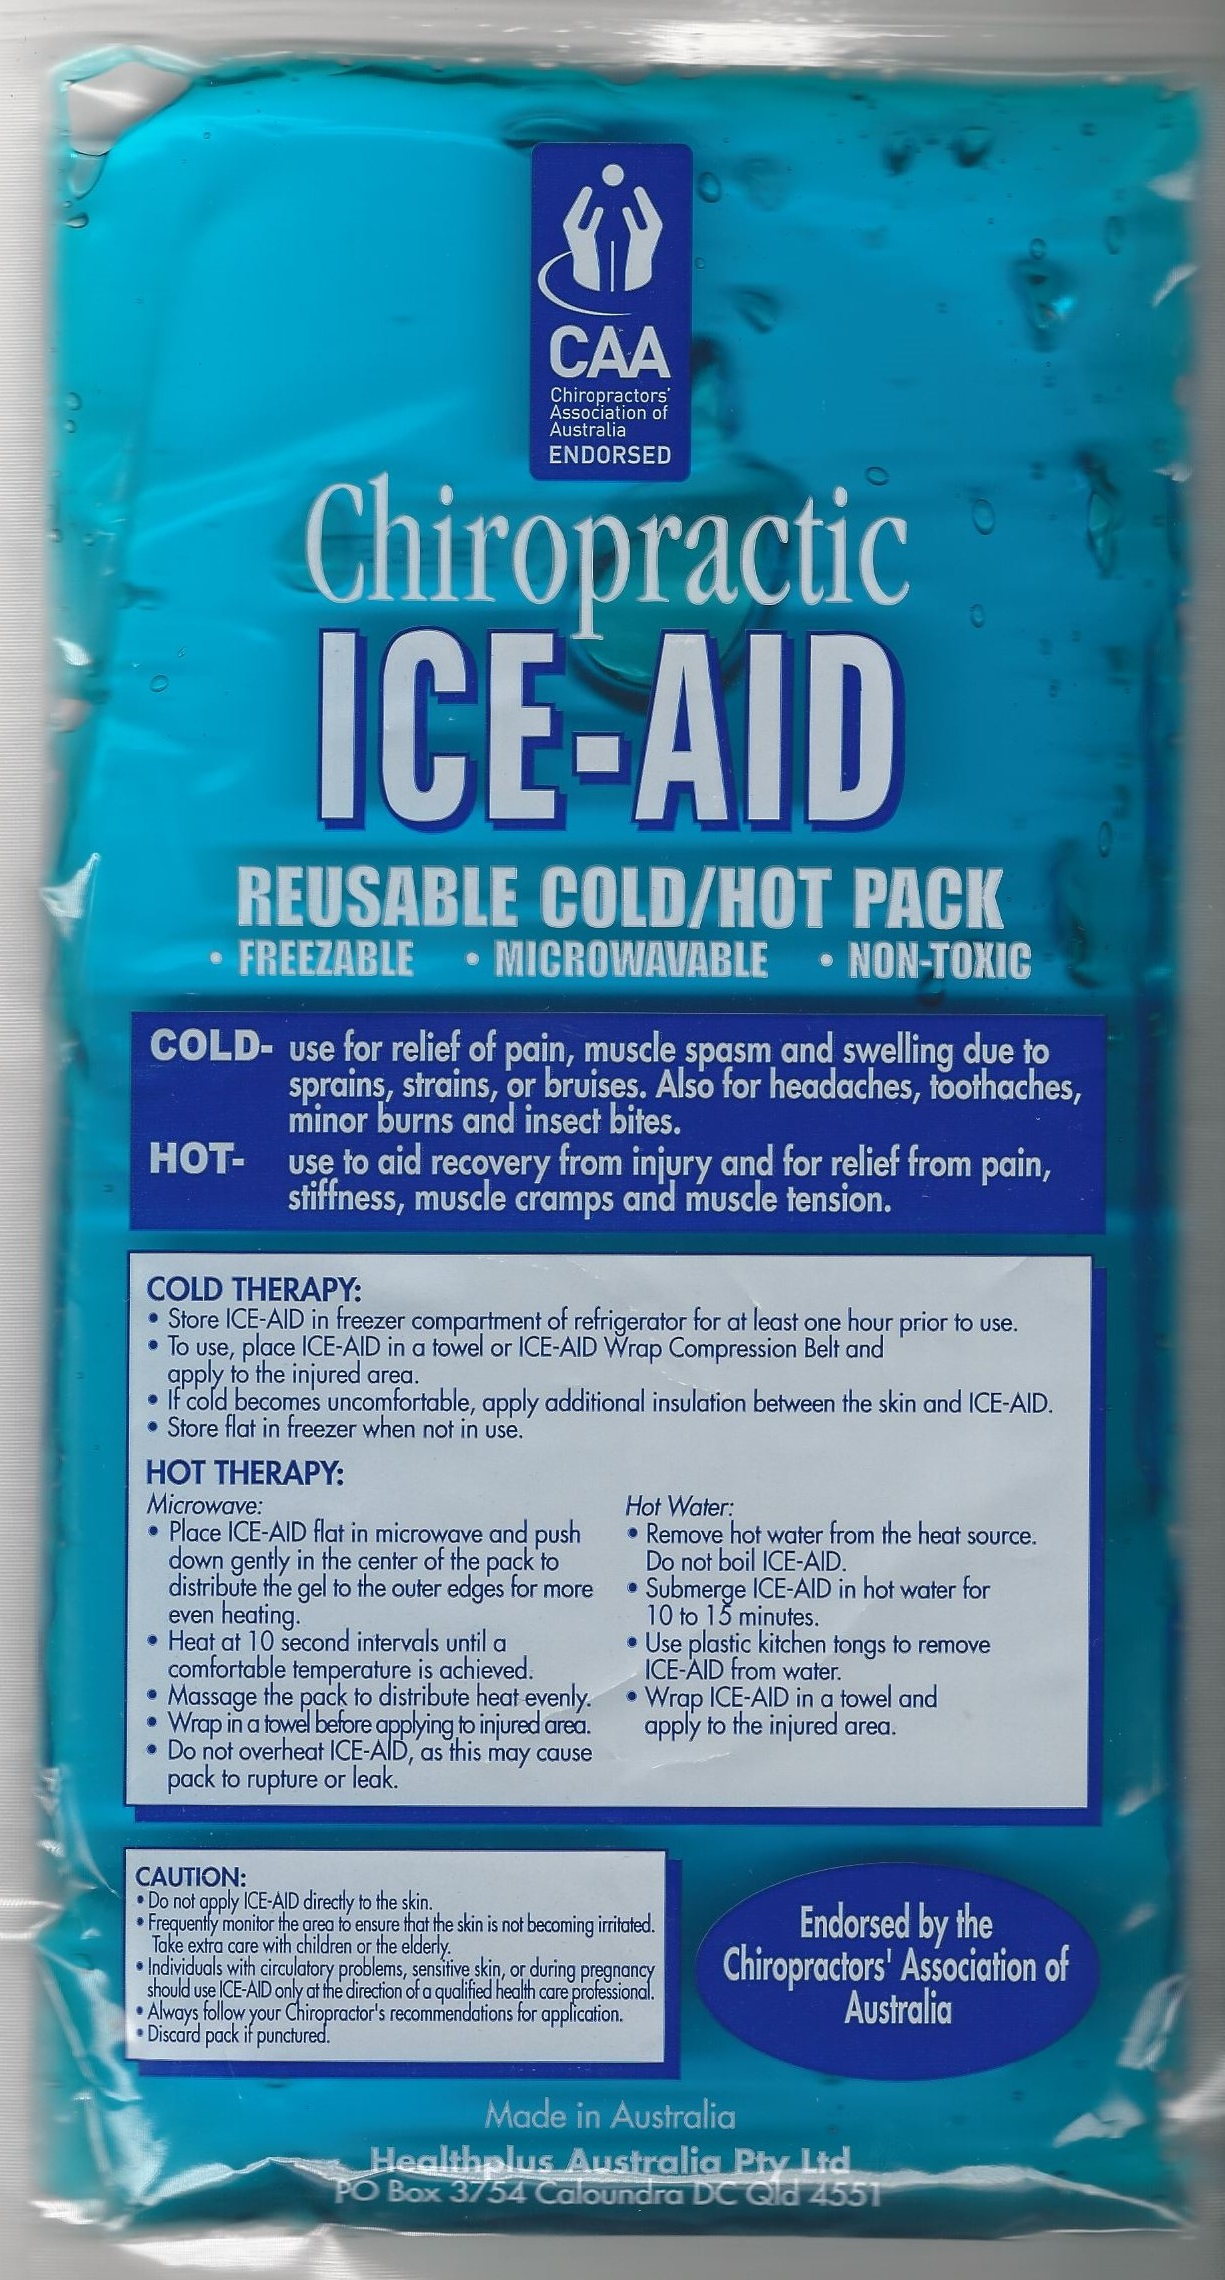 Chiropractic Ice Aid